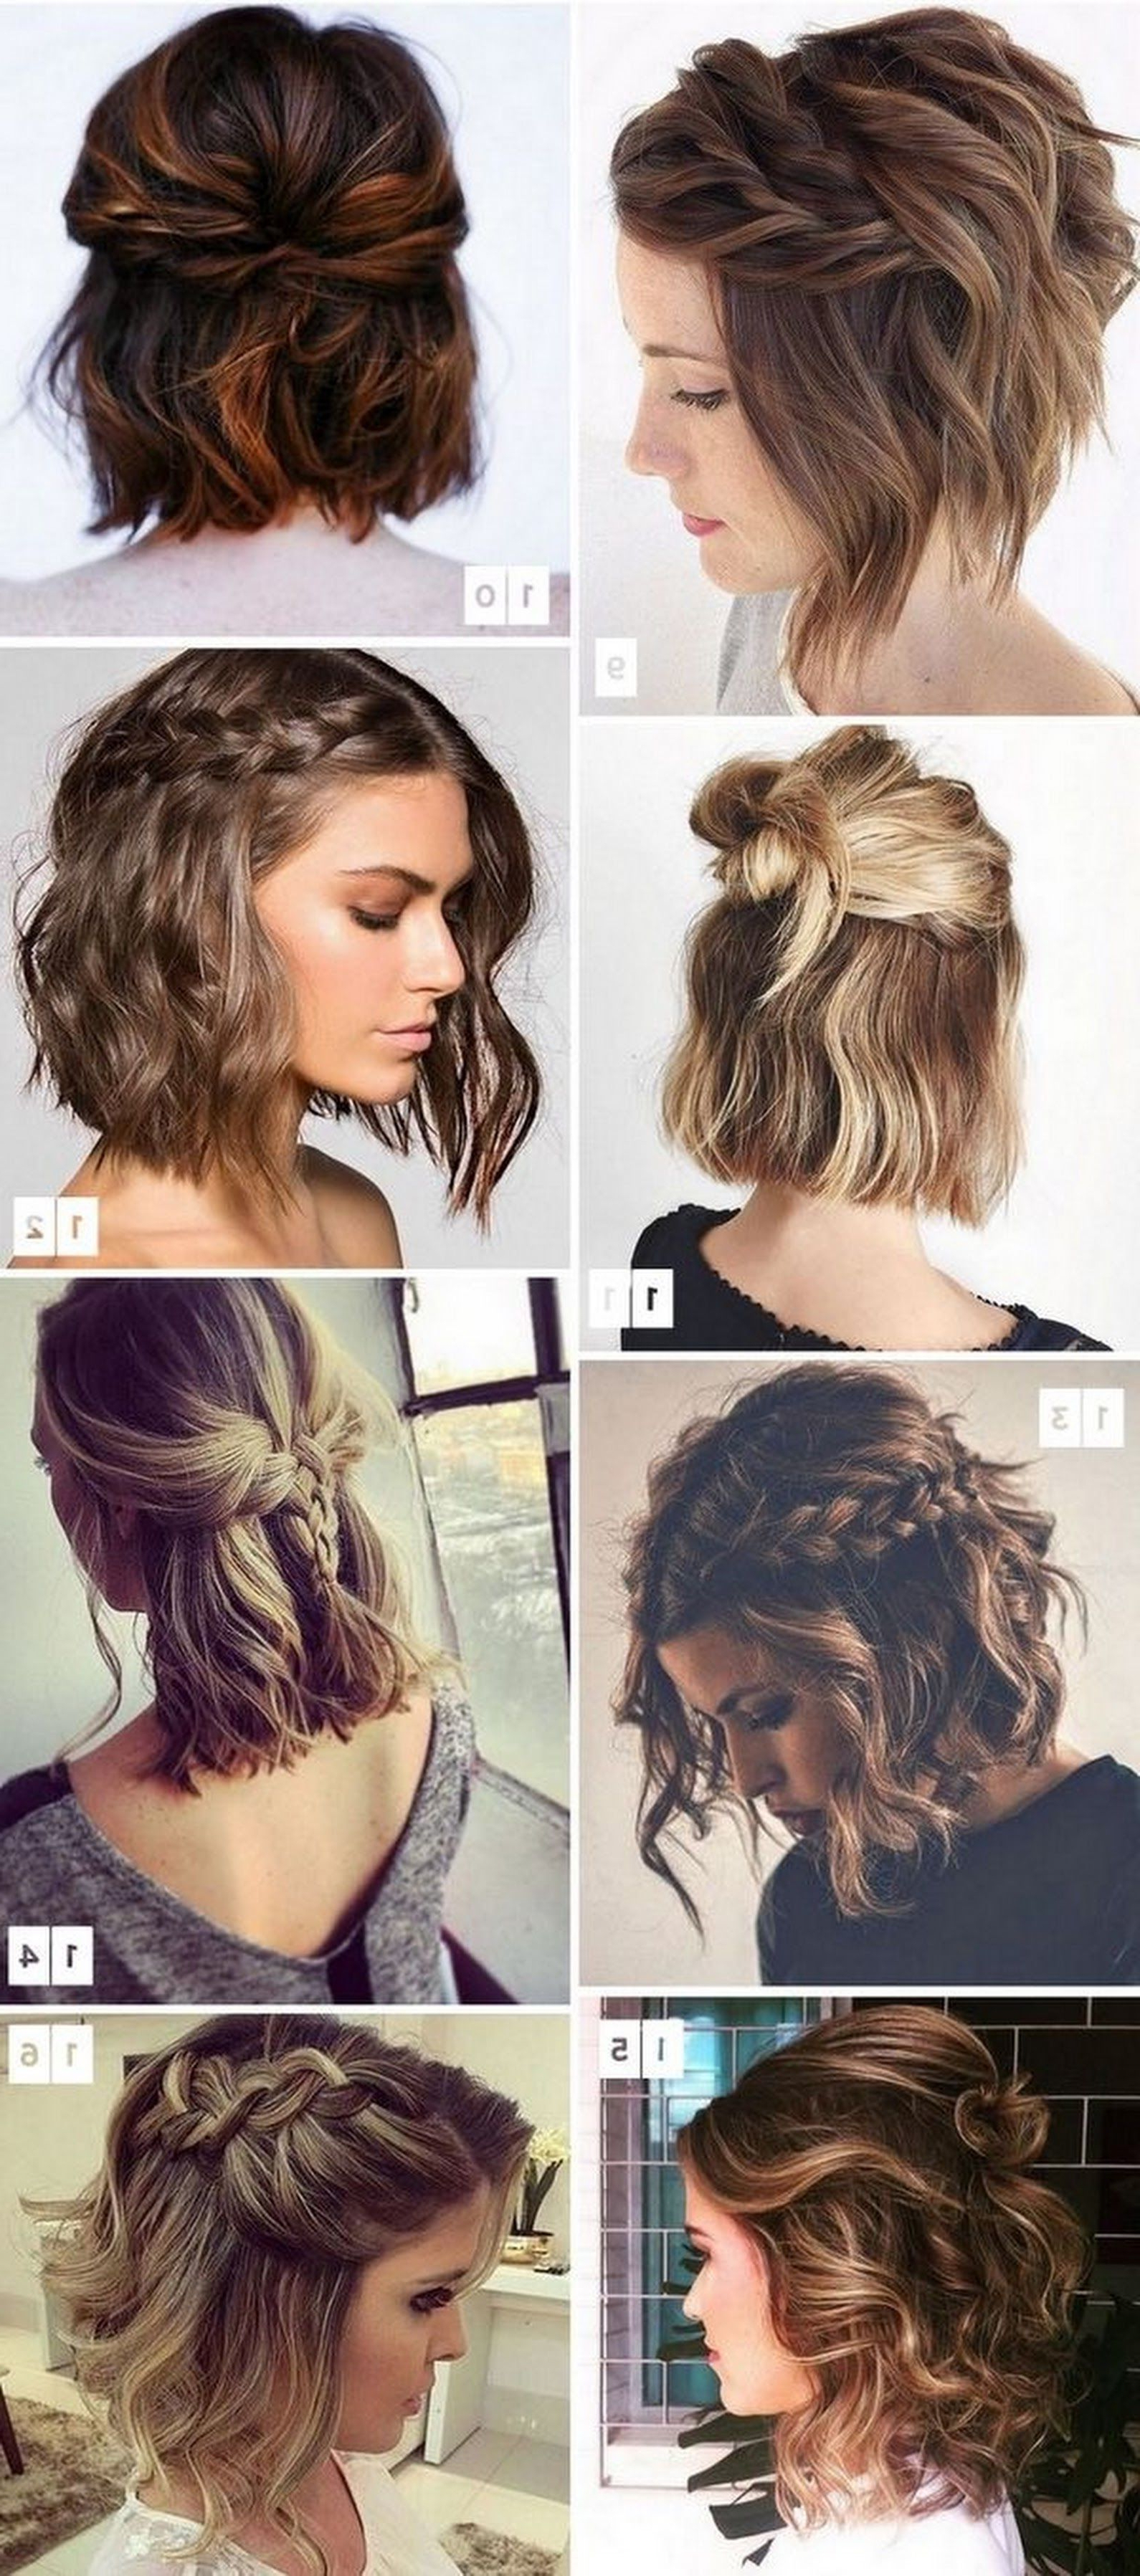 Pincountry Girl On Hair | Pinterest | Hair Style, Makeup And For Prom Short Hairstyles (View 22 of 25)